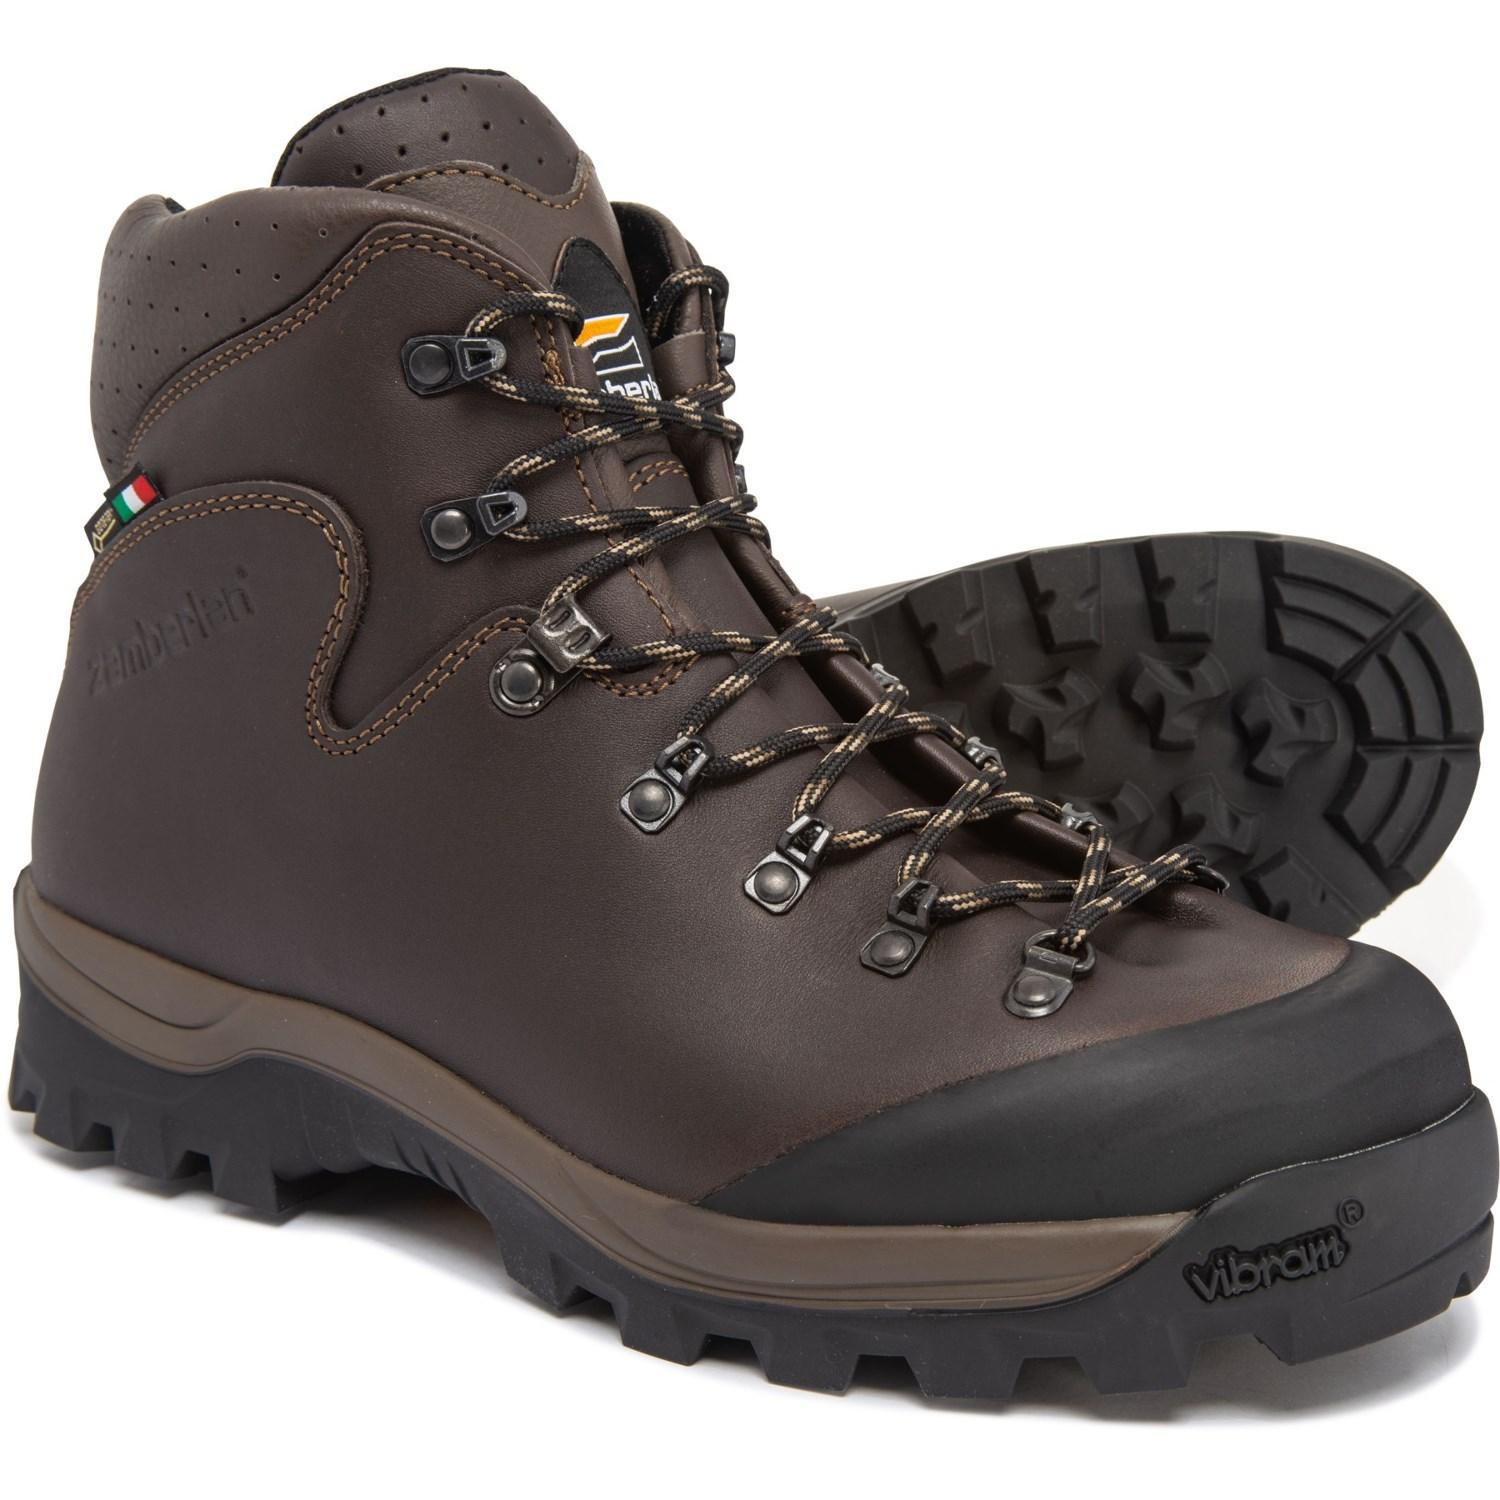 c74cf9d59c4 Men's Brown Made In Italy Haka Gore-tex(r) Rr Hunting Boots